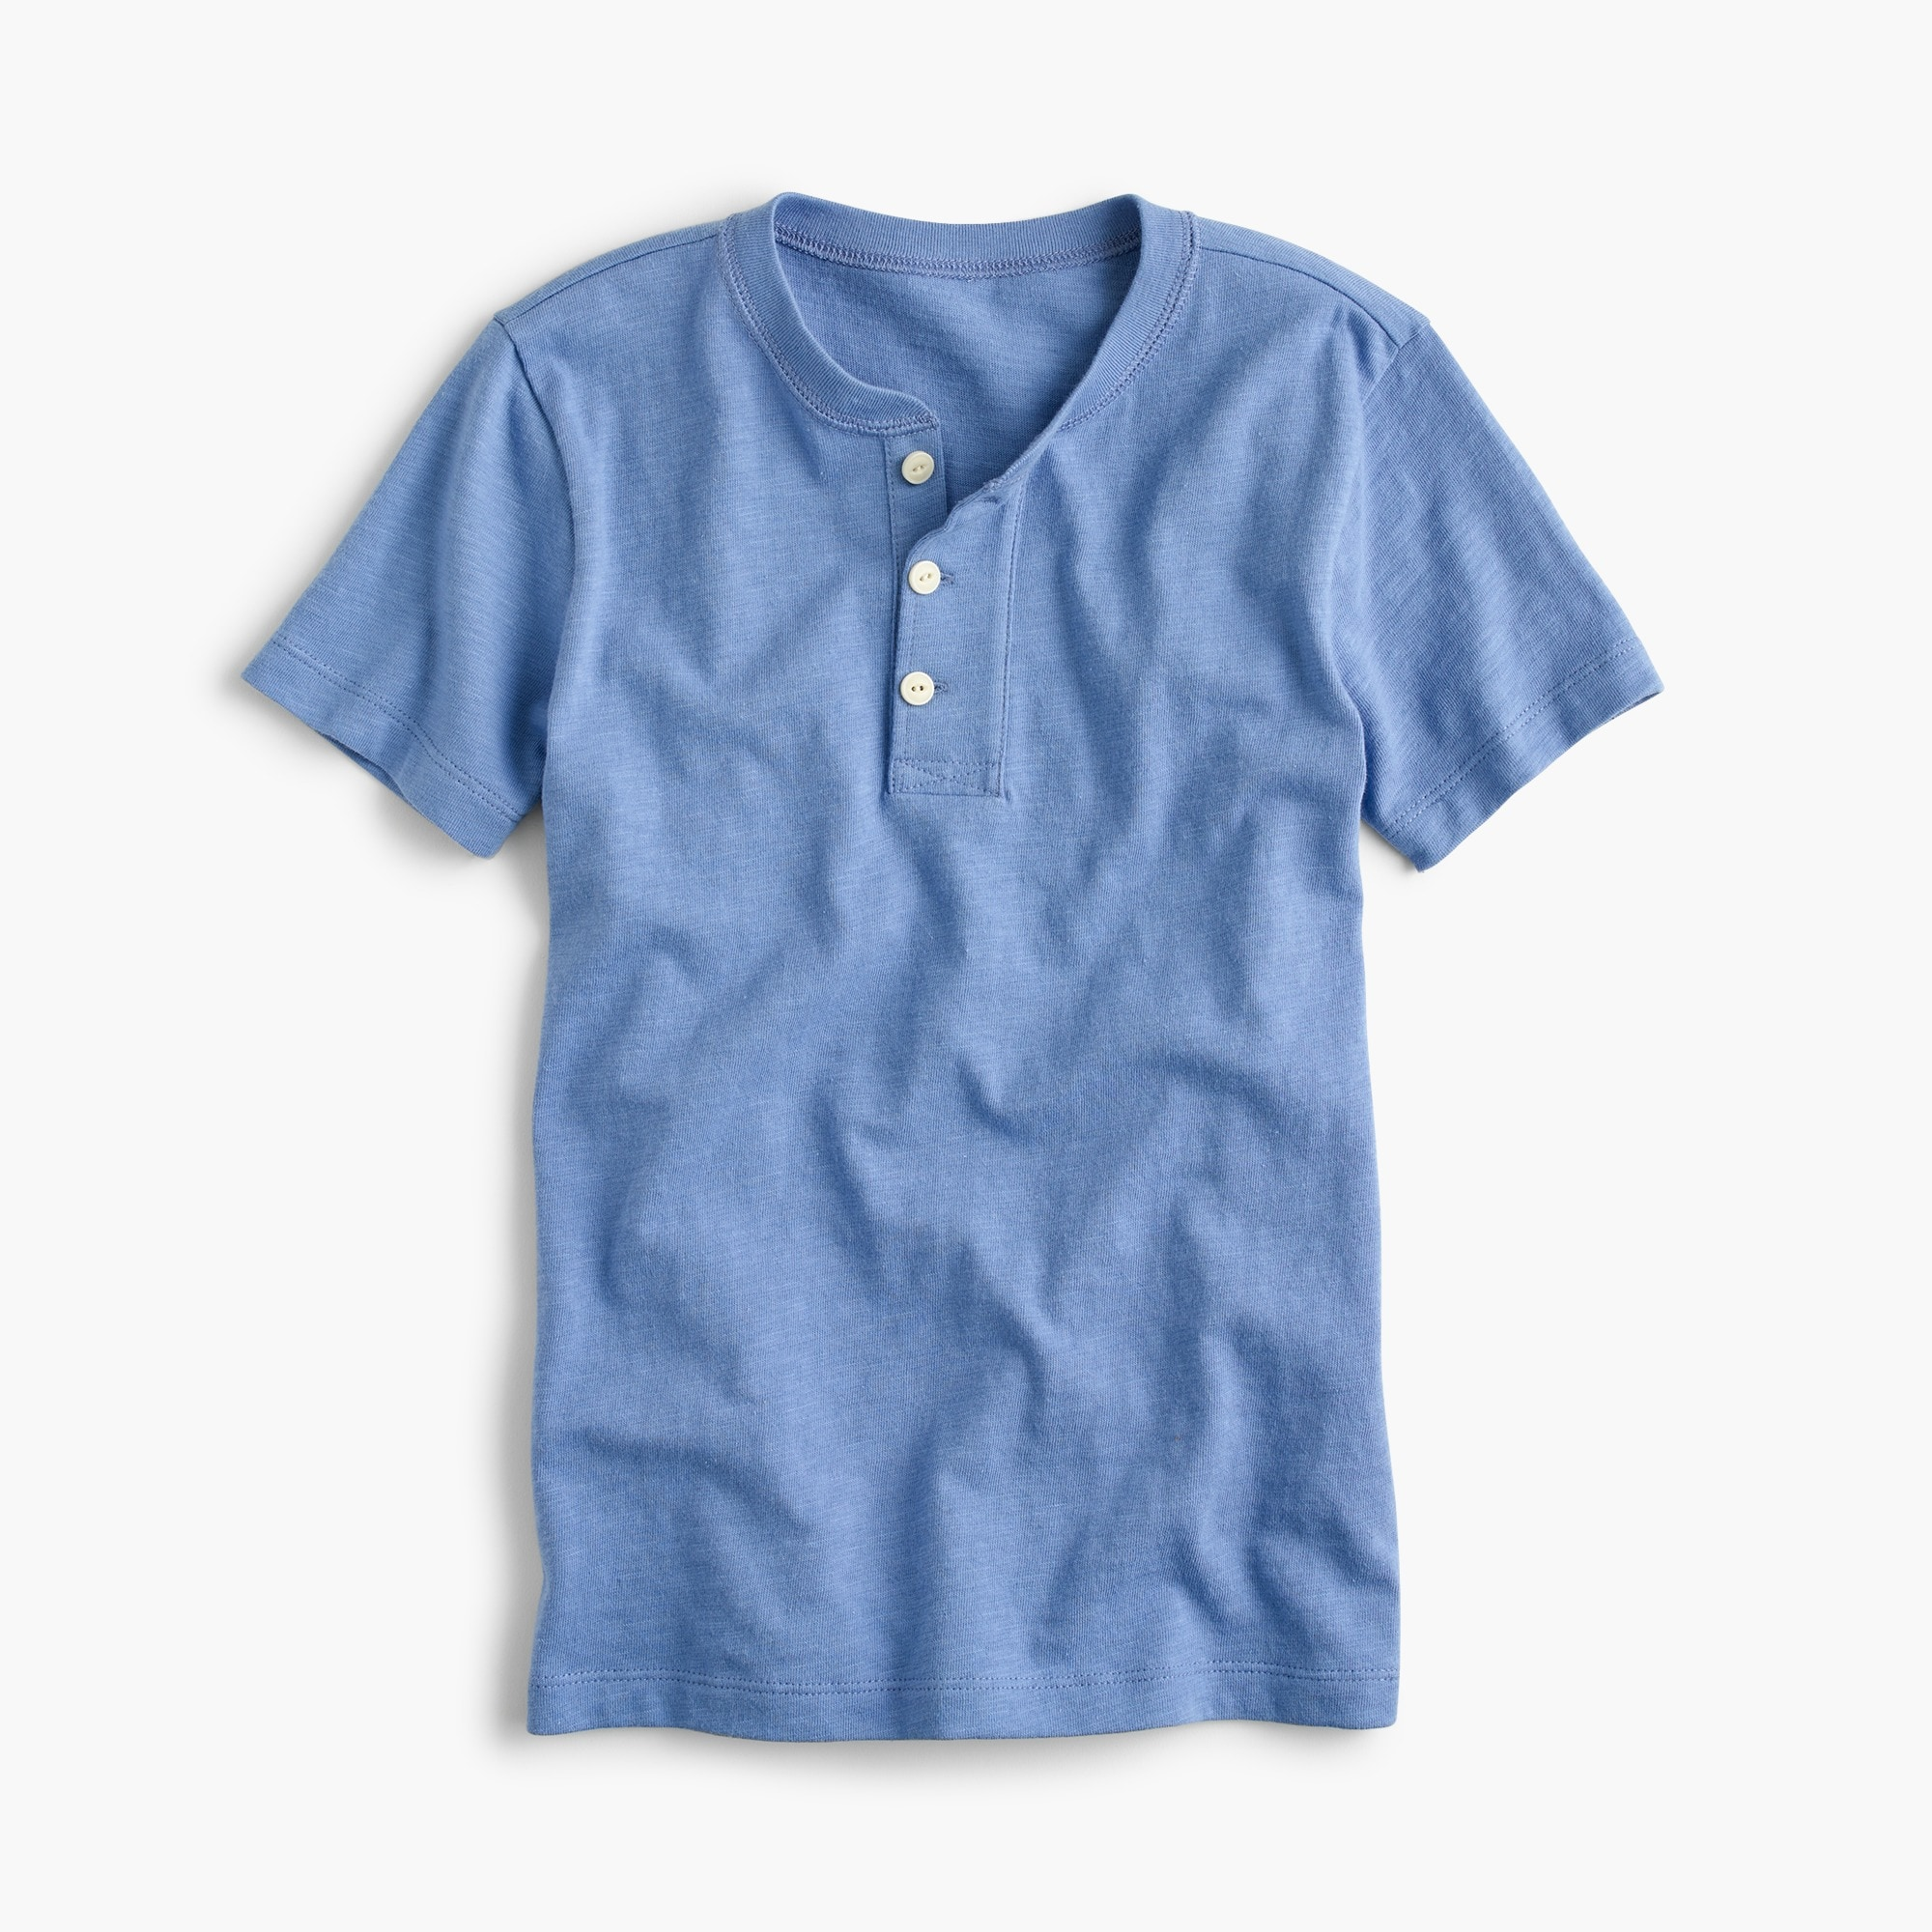 Boys' short-sleeve henley shirt